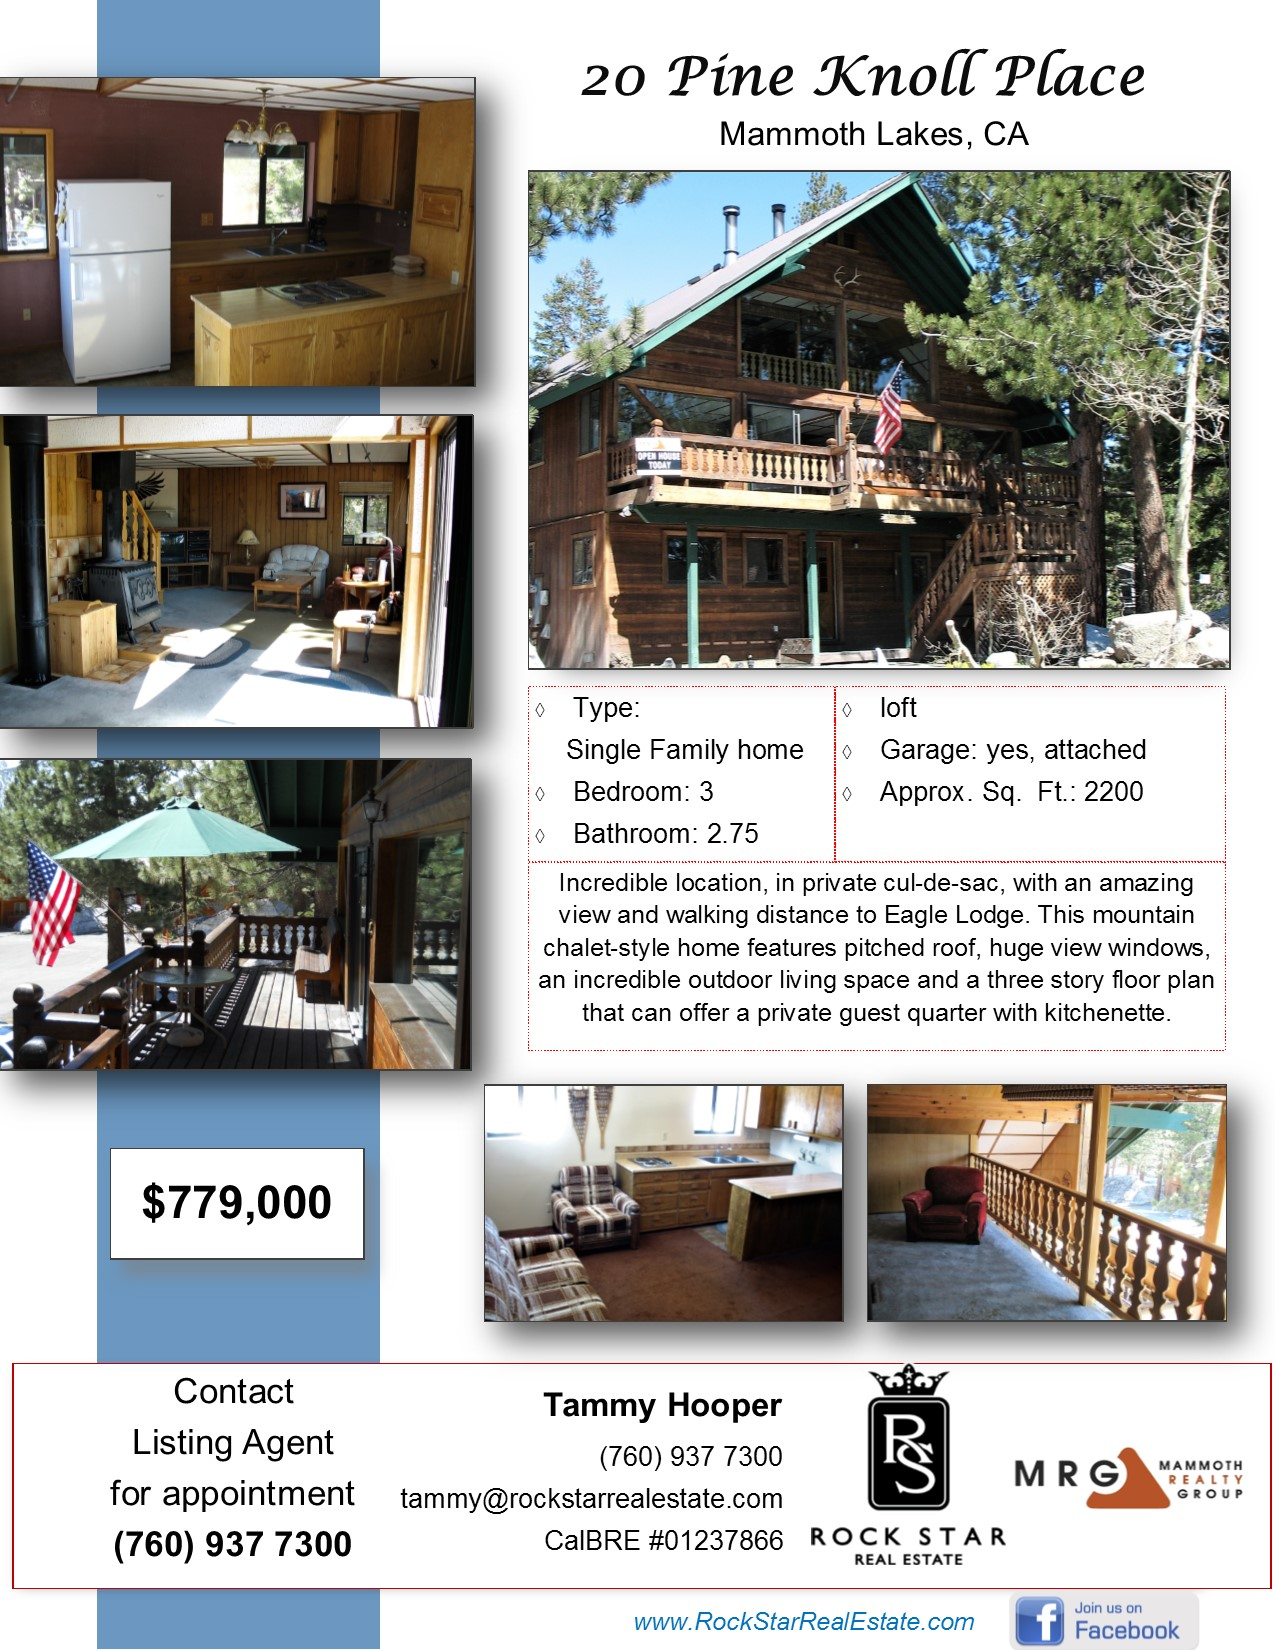 20 Pine Knoll Place flyer